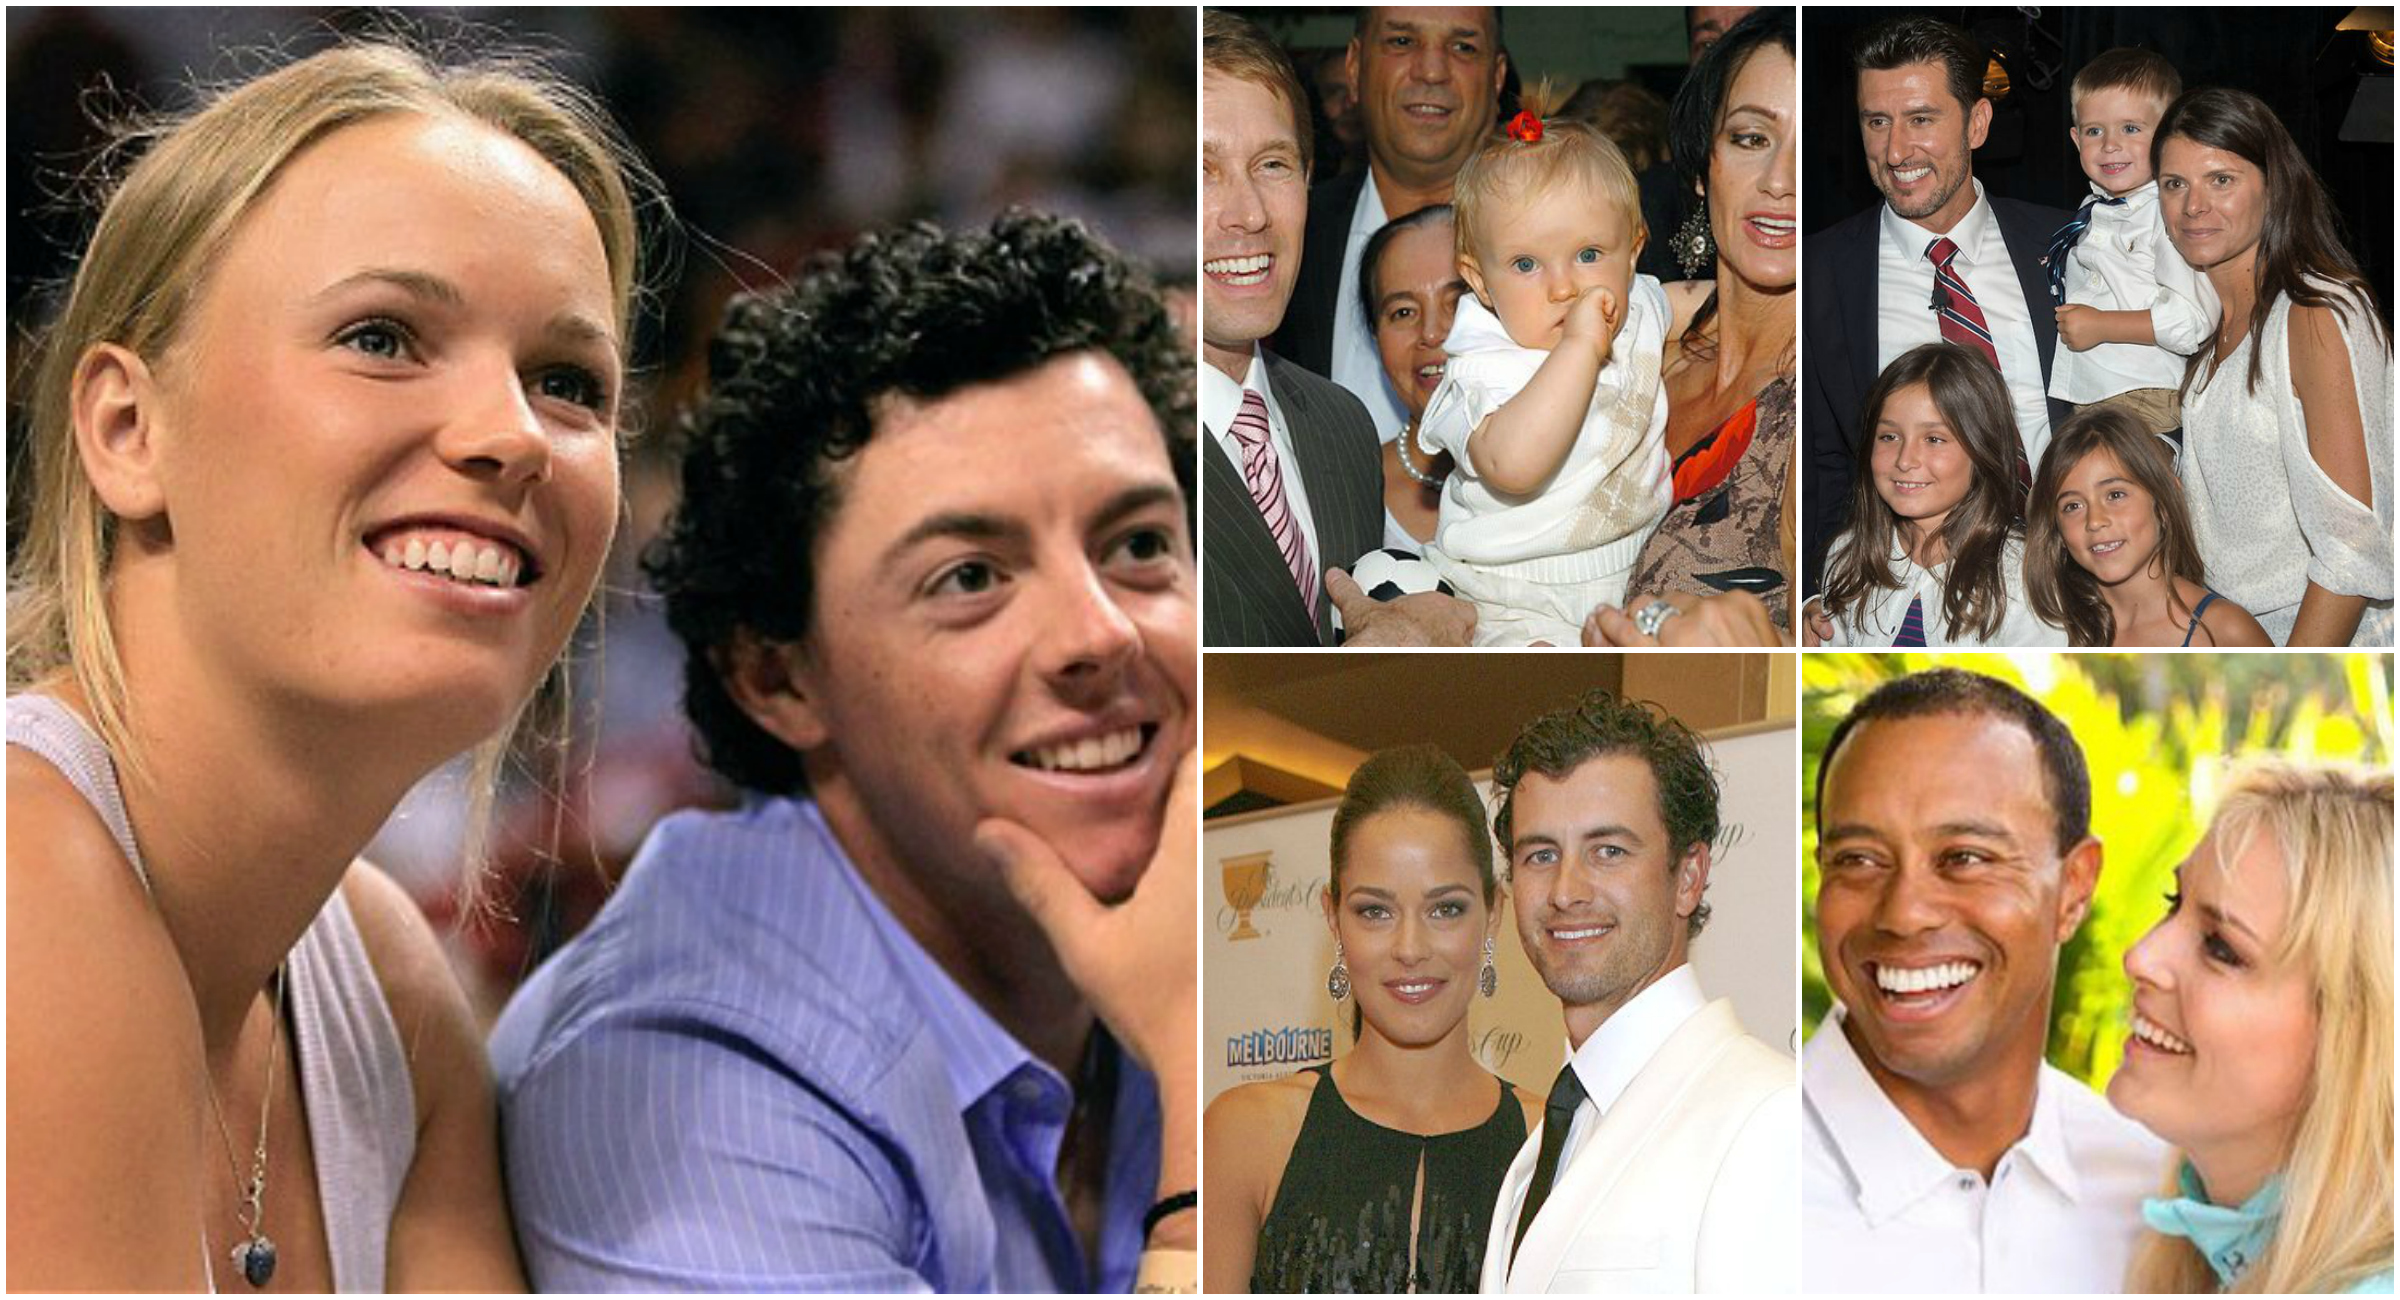 The Top 10 Most Famous Sports Couples of All-Time